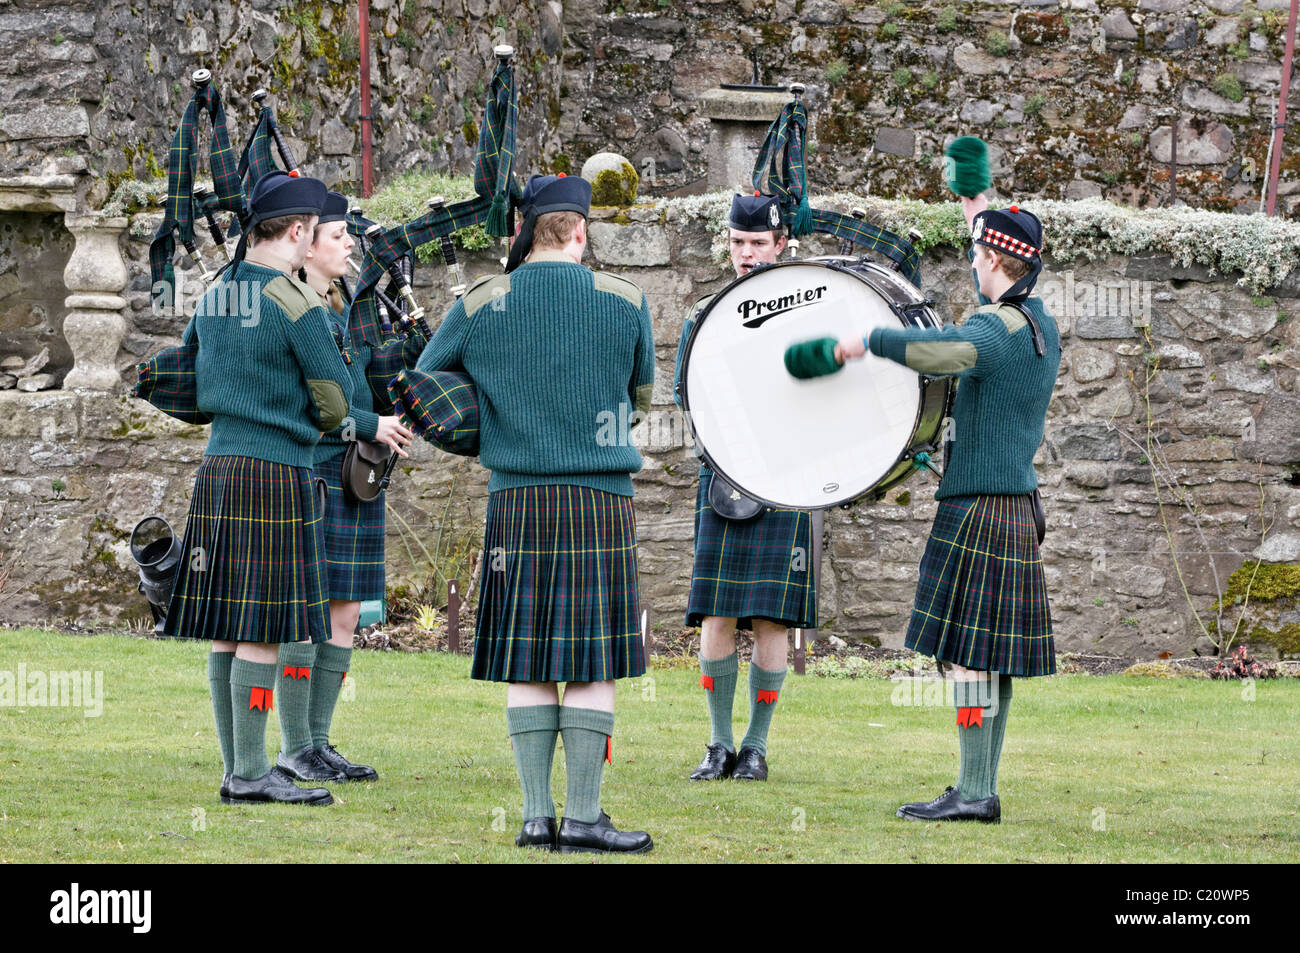 Members of the British Army's Officer Training Corps (OTC) playing in a Pipes and Drums Band competition - Stock Image